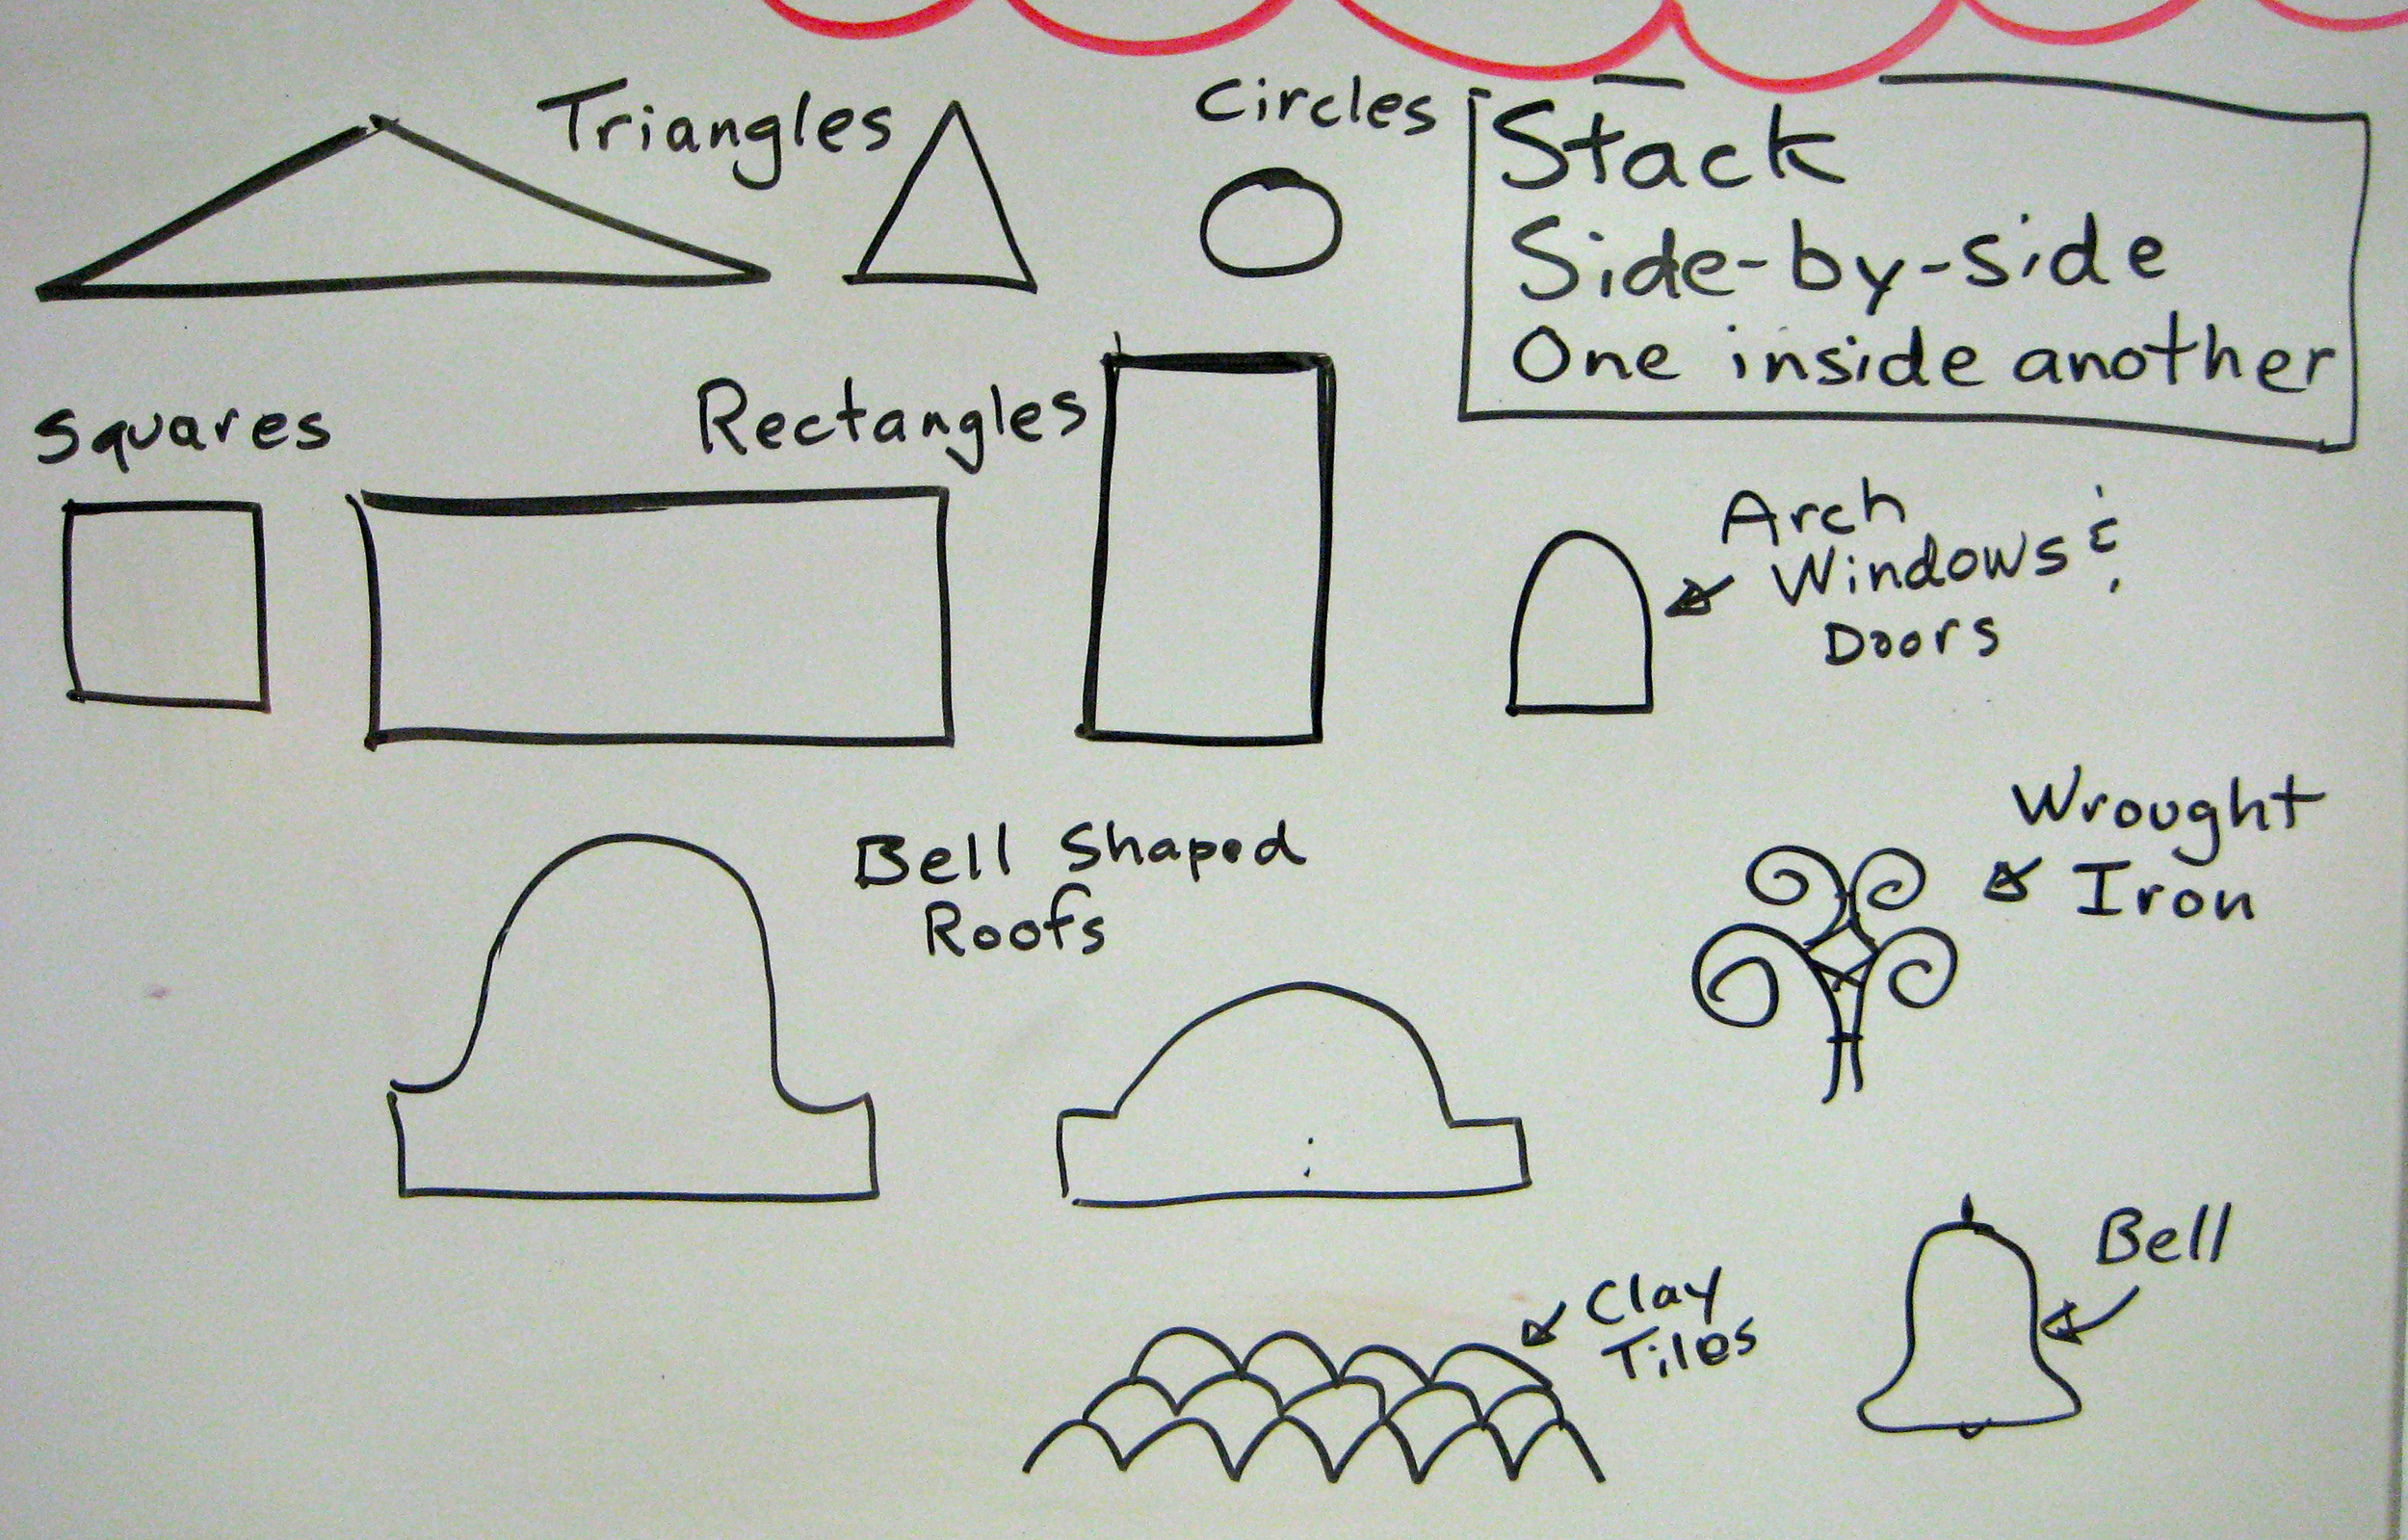 Basic Building Shapes from California Missions. Ideas for how to combine the shapes to create a new building: stack, side-by-side and one shape inside another shape.